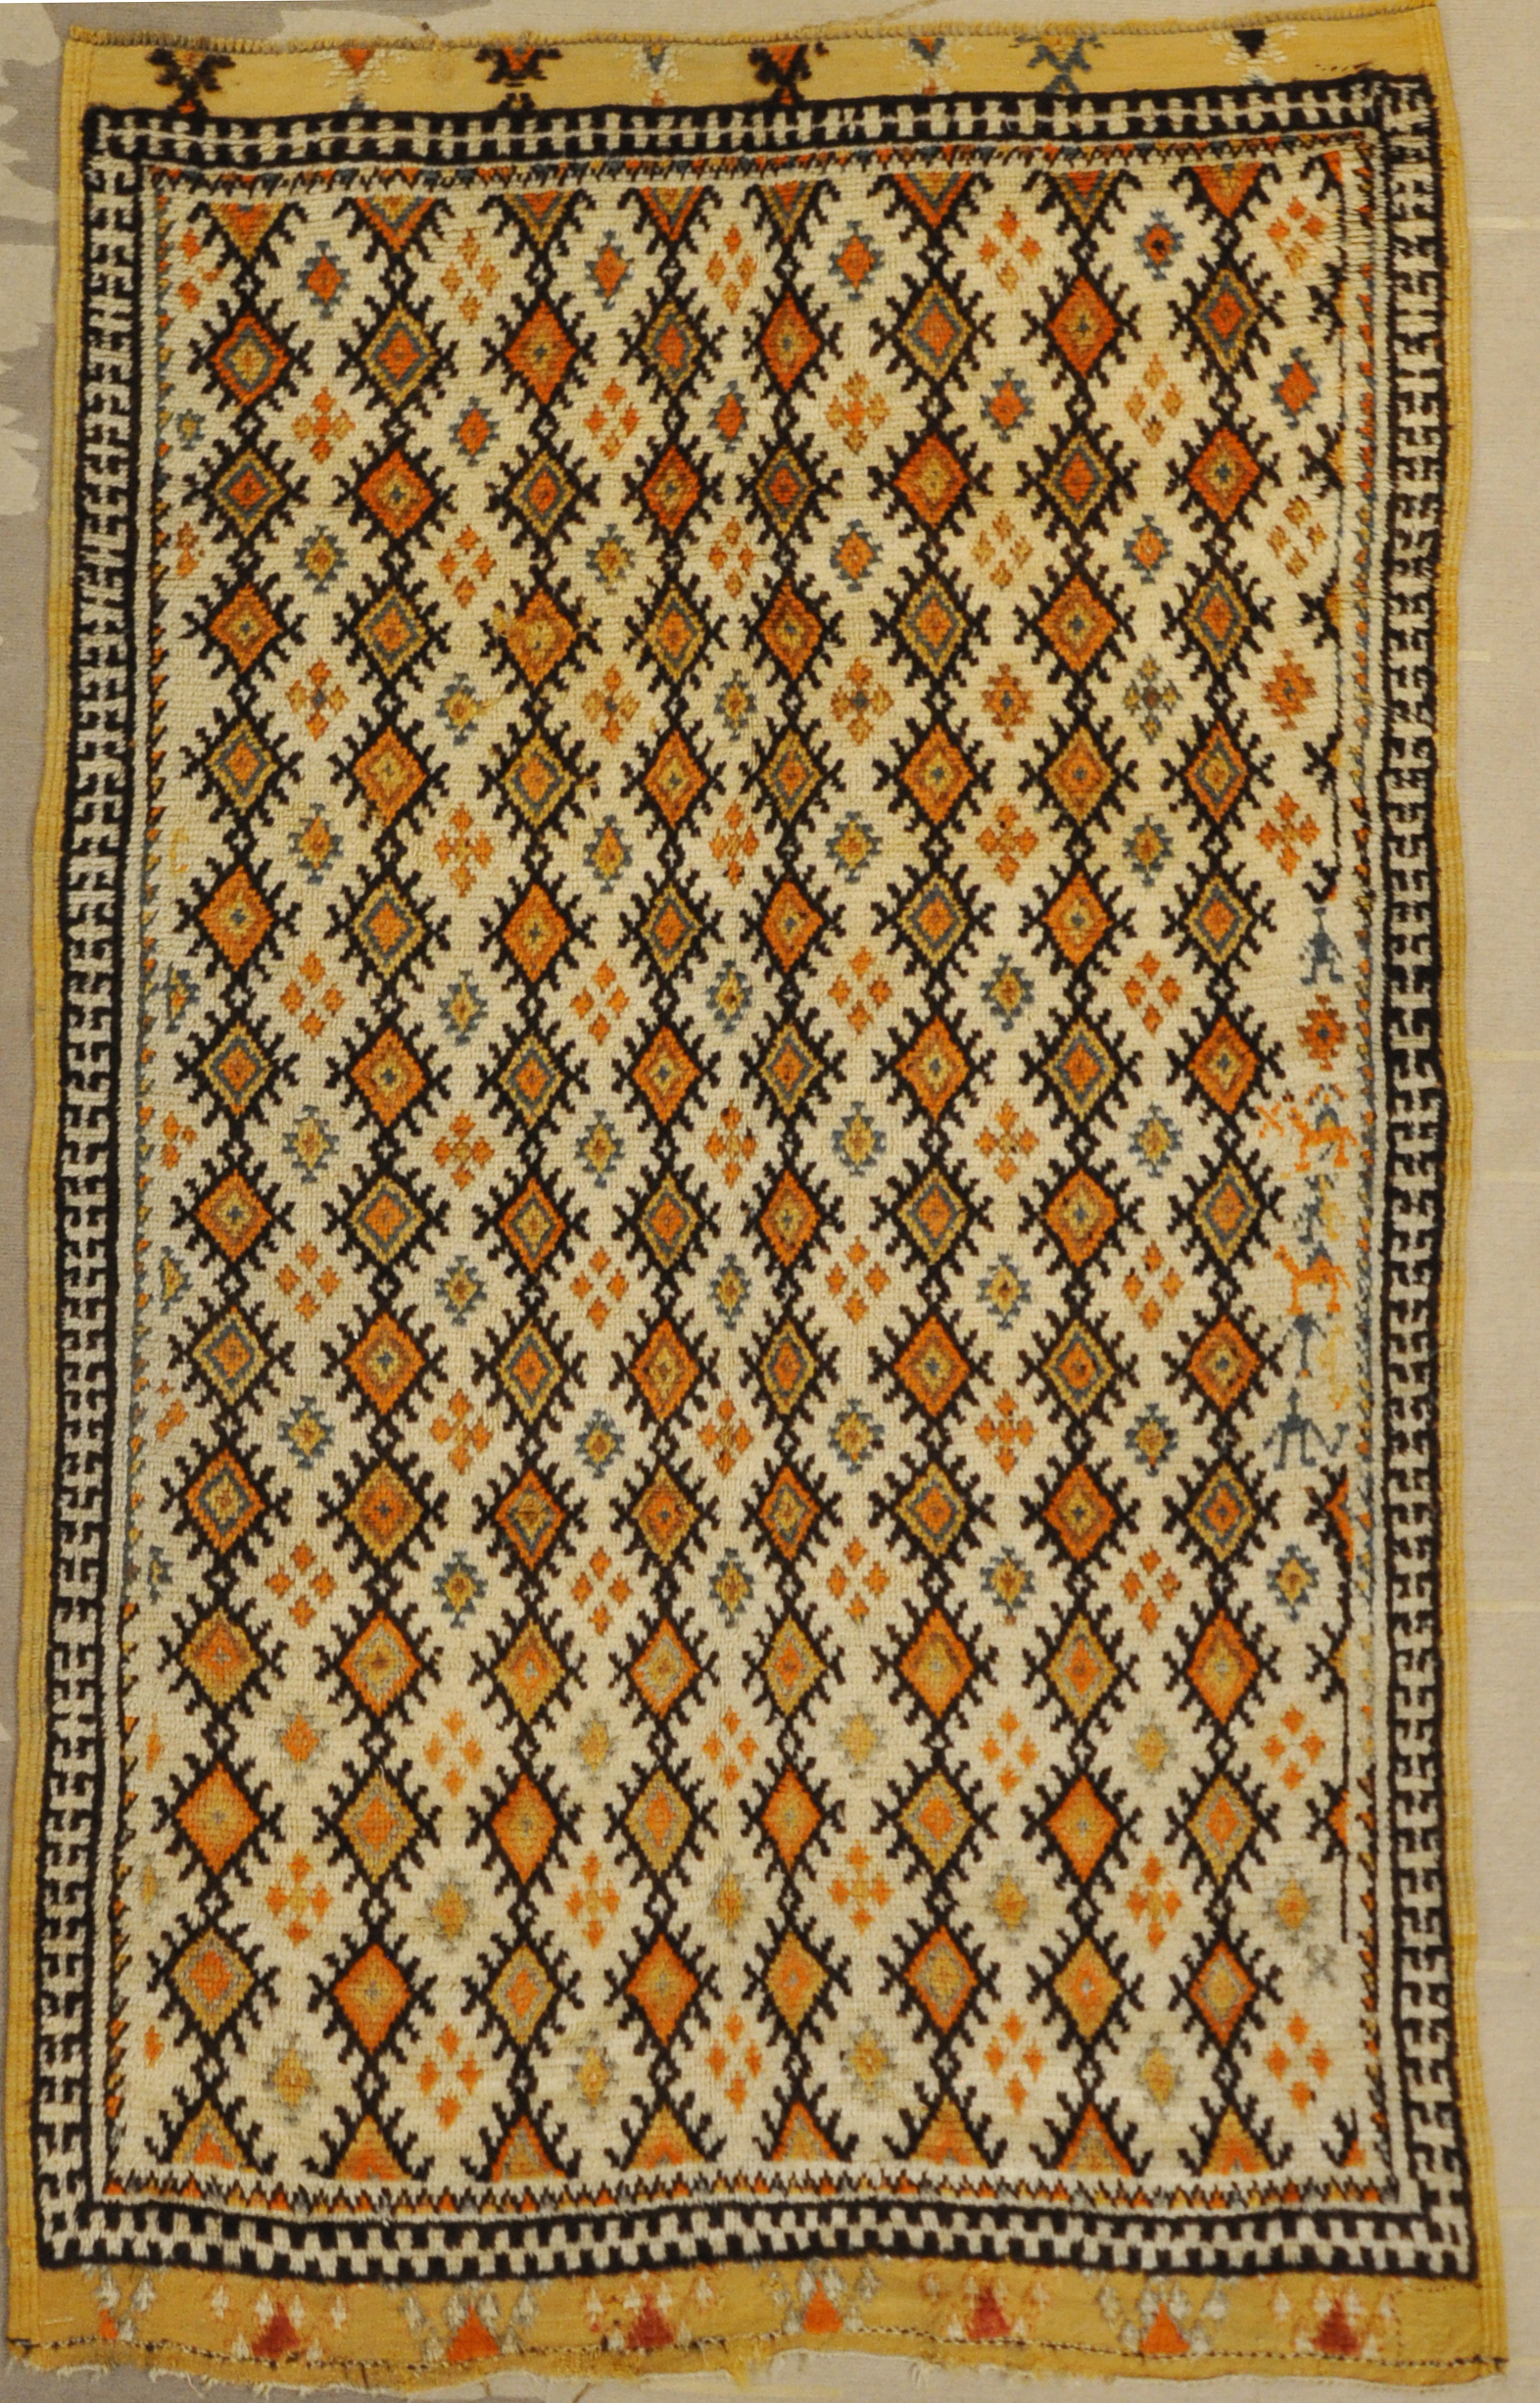 Fine Moroccan Rug santa barbara design center